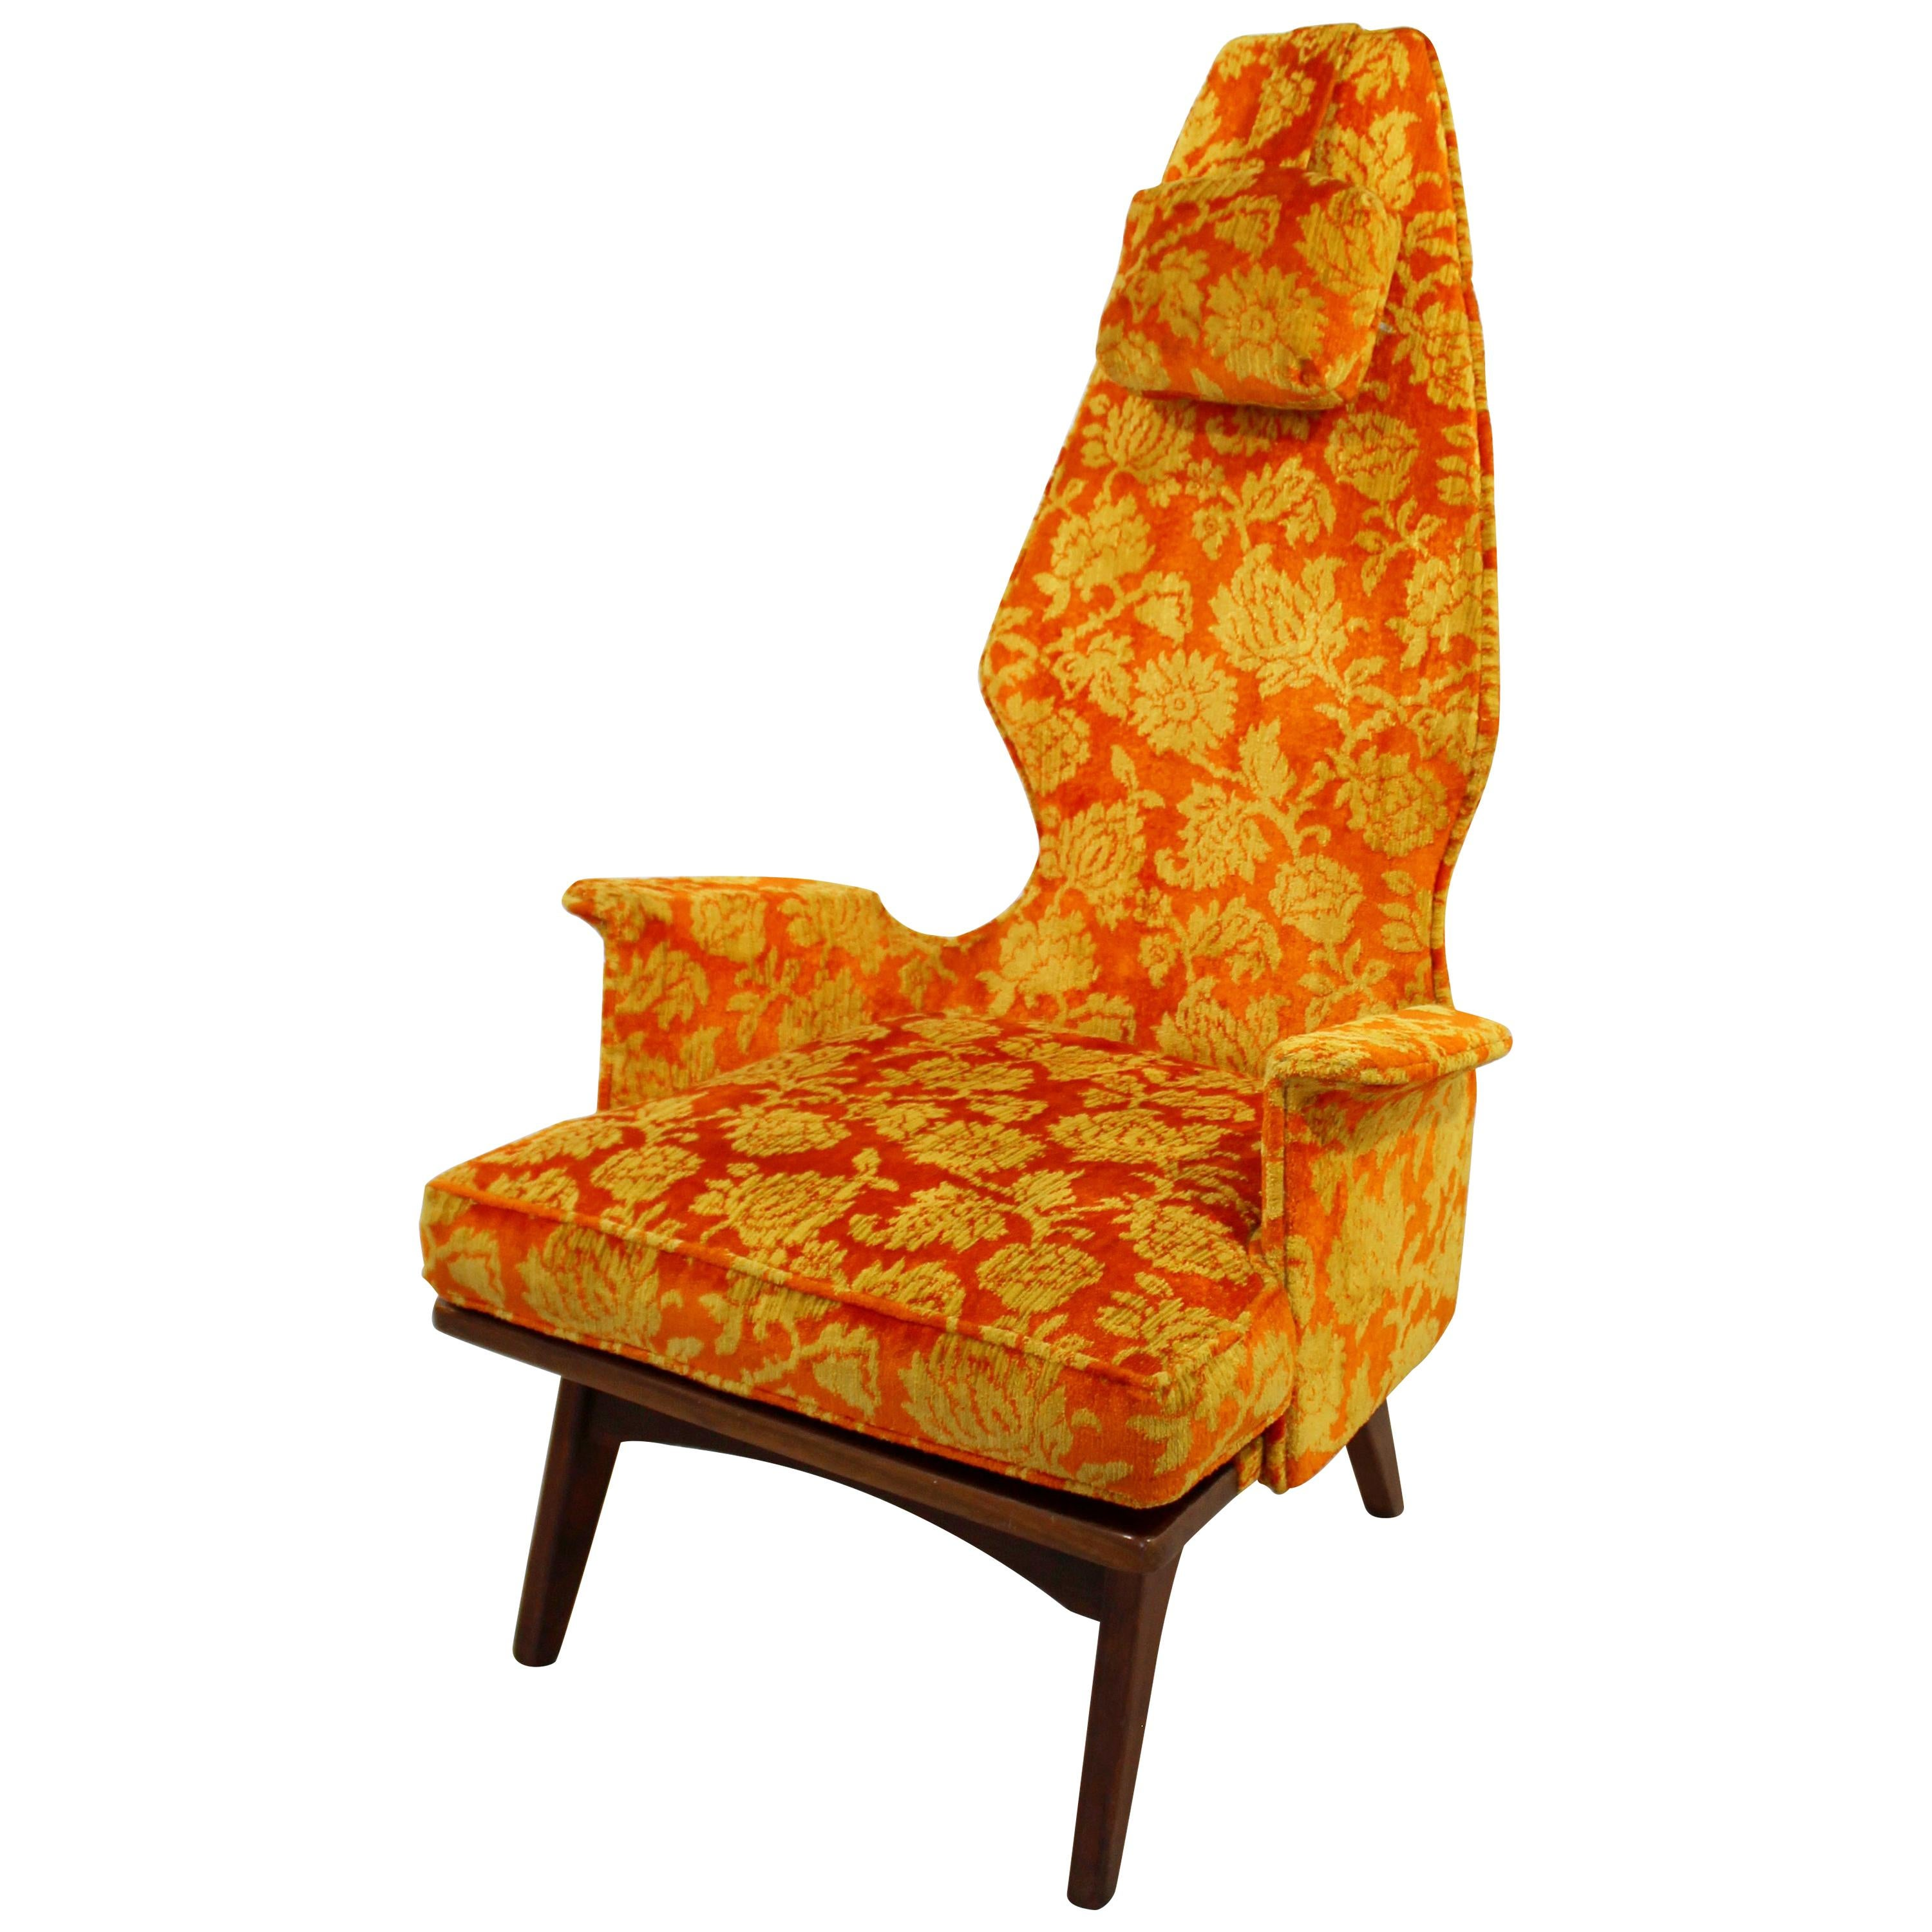 Mid-Century Modern Vintage Adrian Pearsall High Back Accent Lounge Chair, 1960s